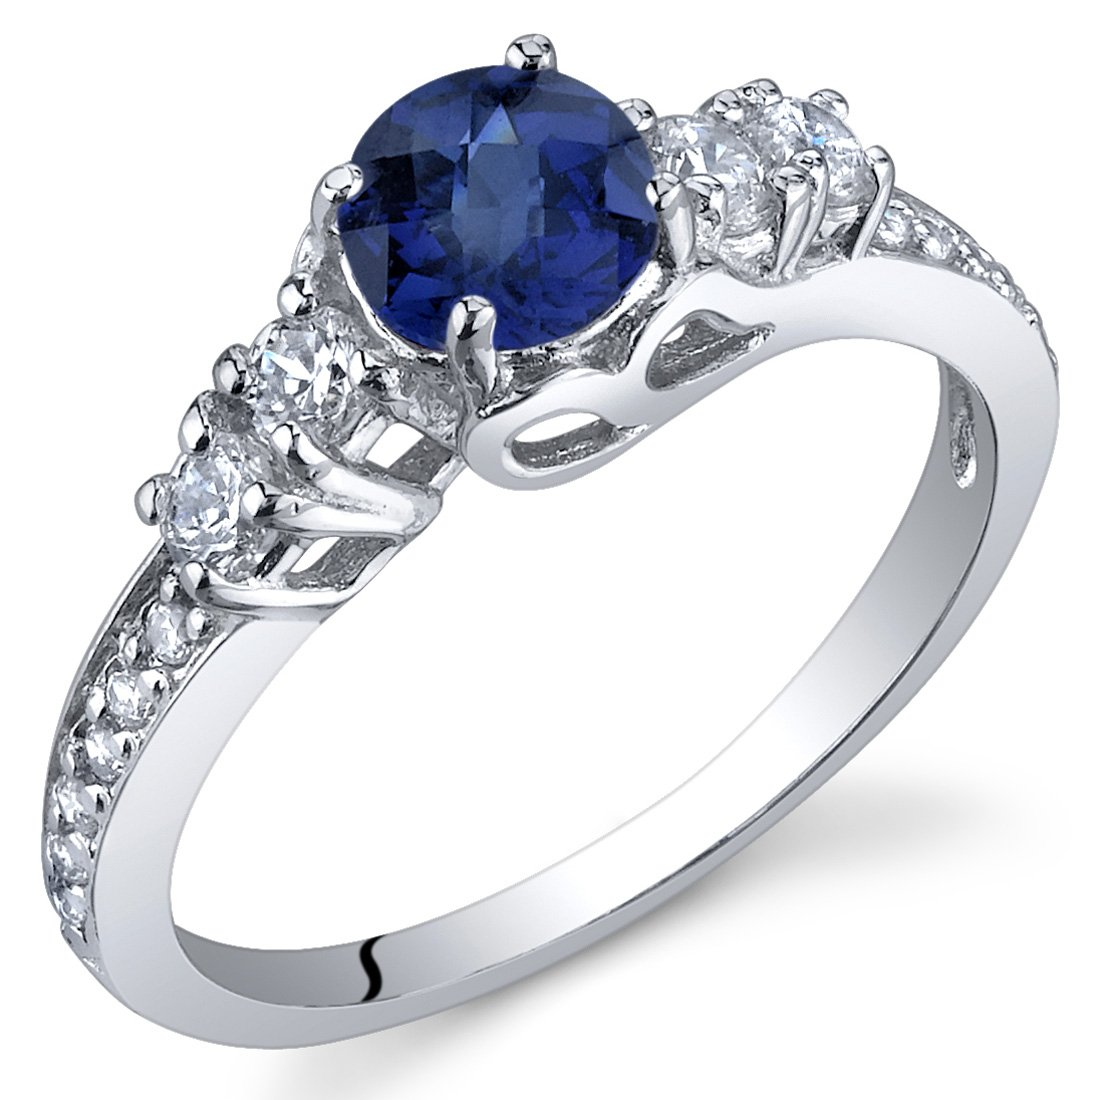 Sapphire Solstice Ring Sterling Silver - 45th wedding anniversary gift